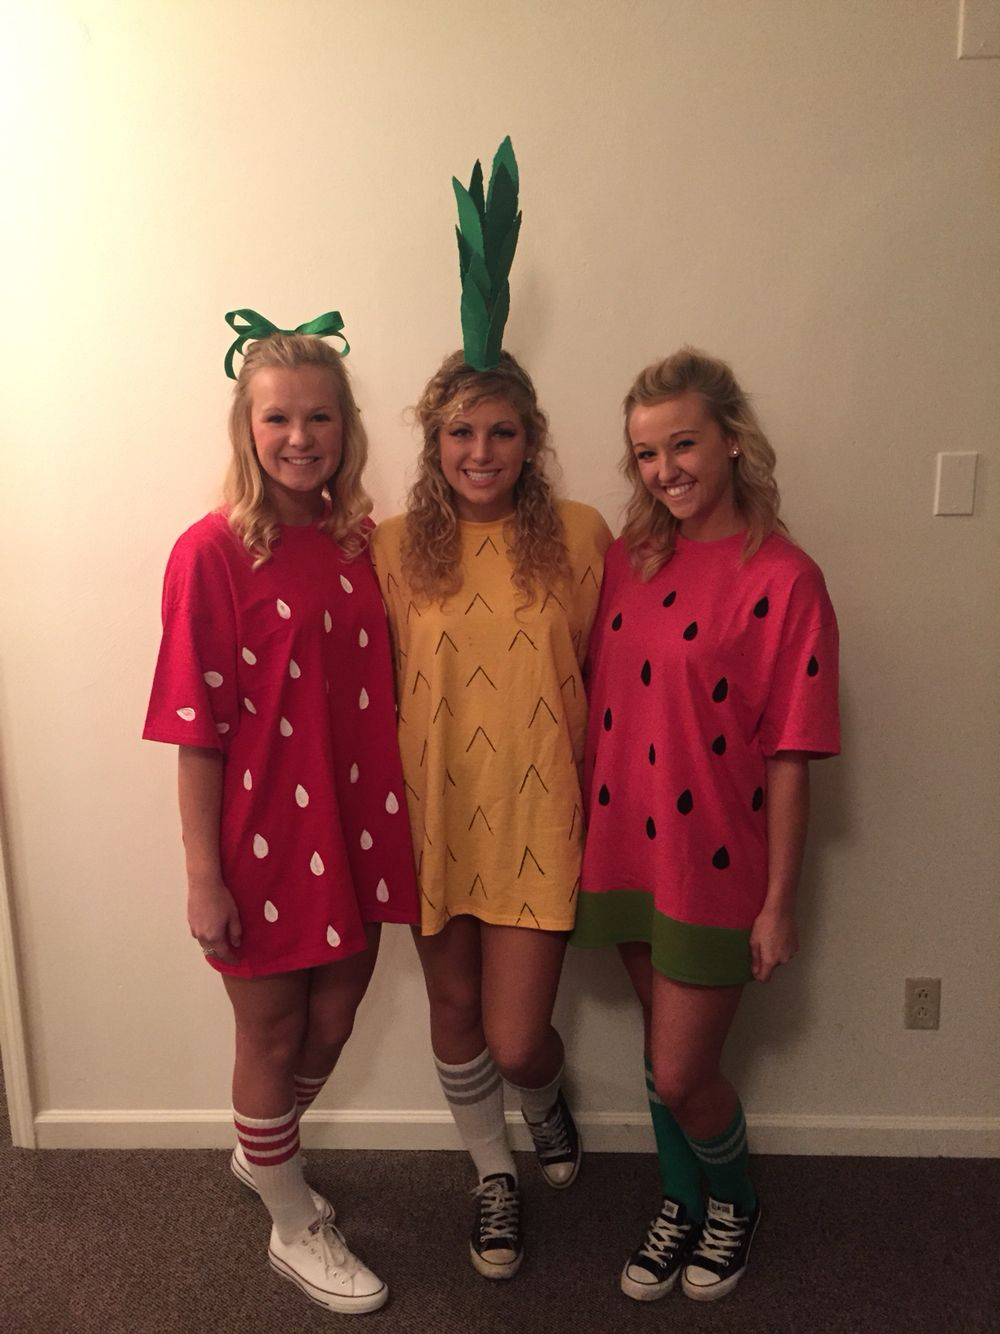 Fruit Costume DIY  sc 1 st  Pinterest & Fruit Costume DIY | Crafts and such! | Pinterest | Fruit costumes ...